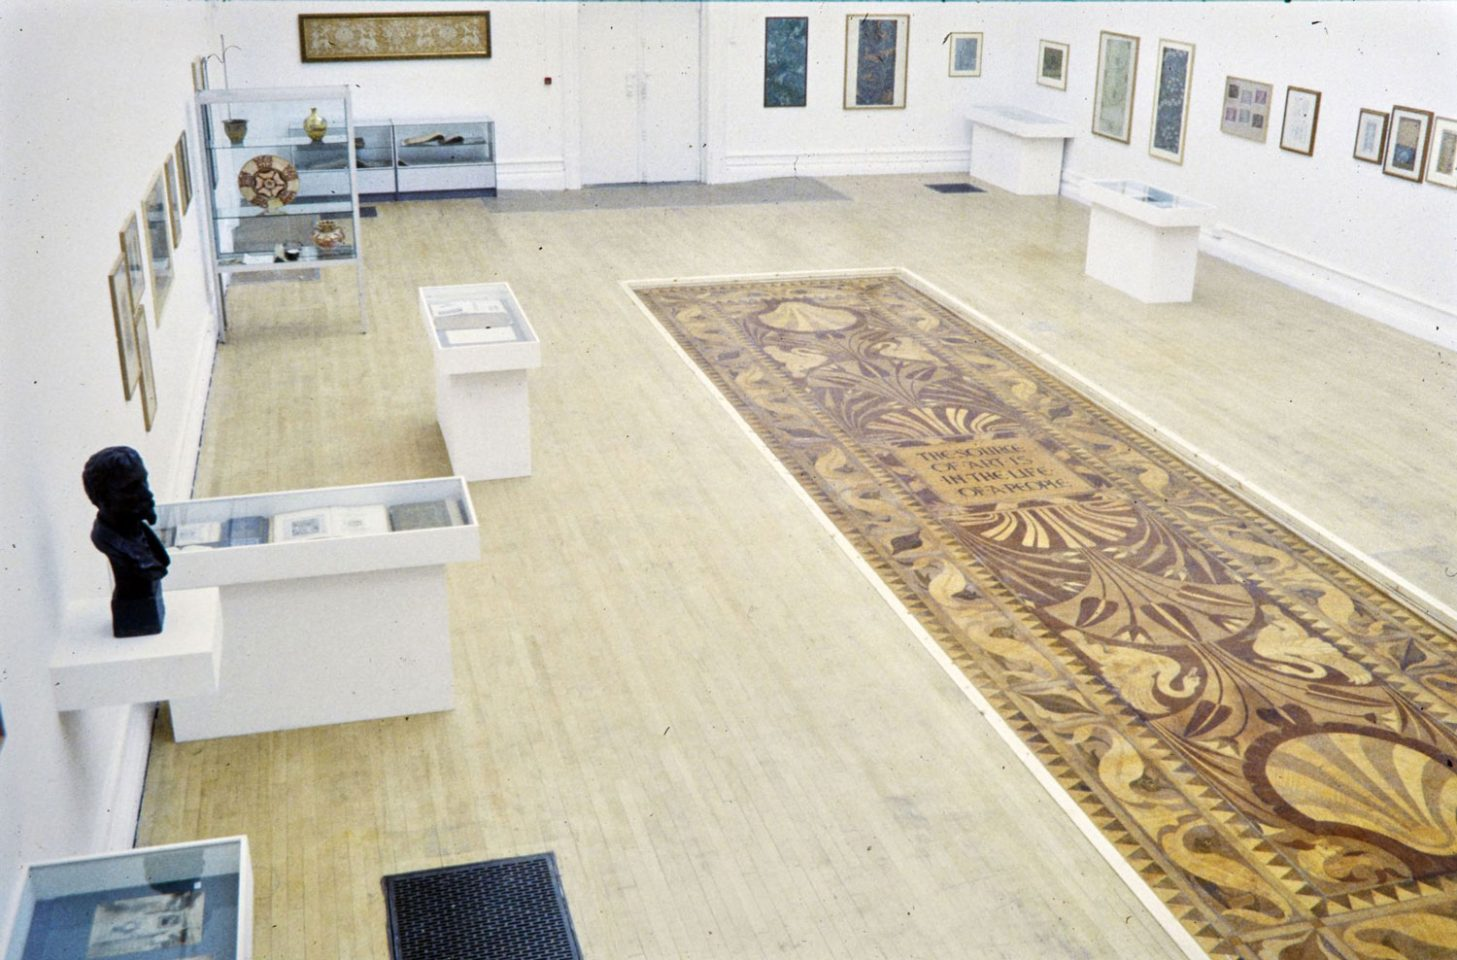 Walter Crane: Walter Crane Floor and Exhibition